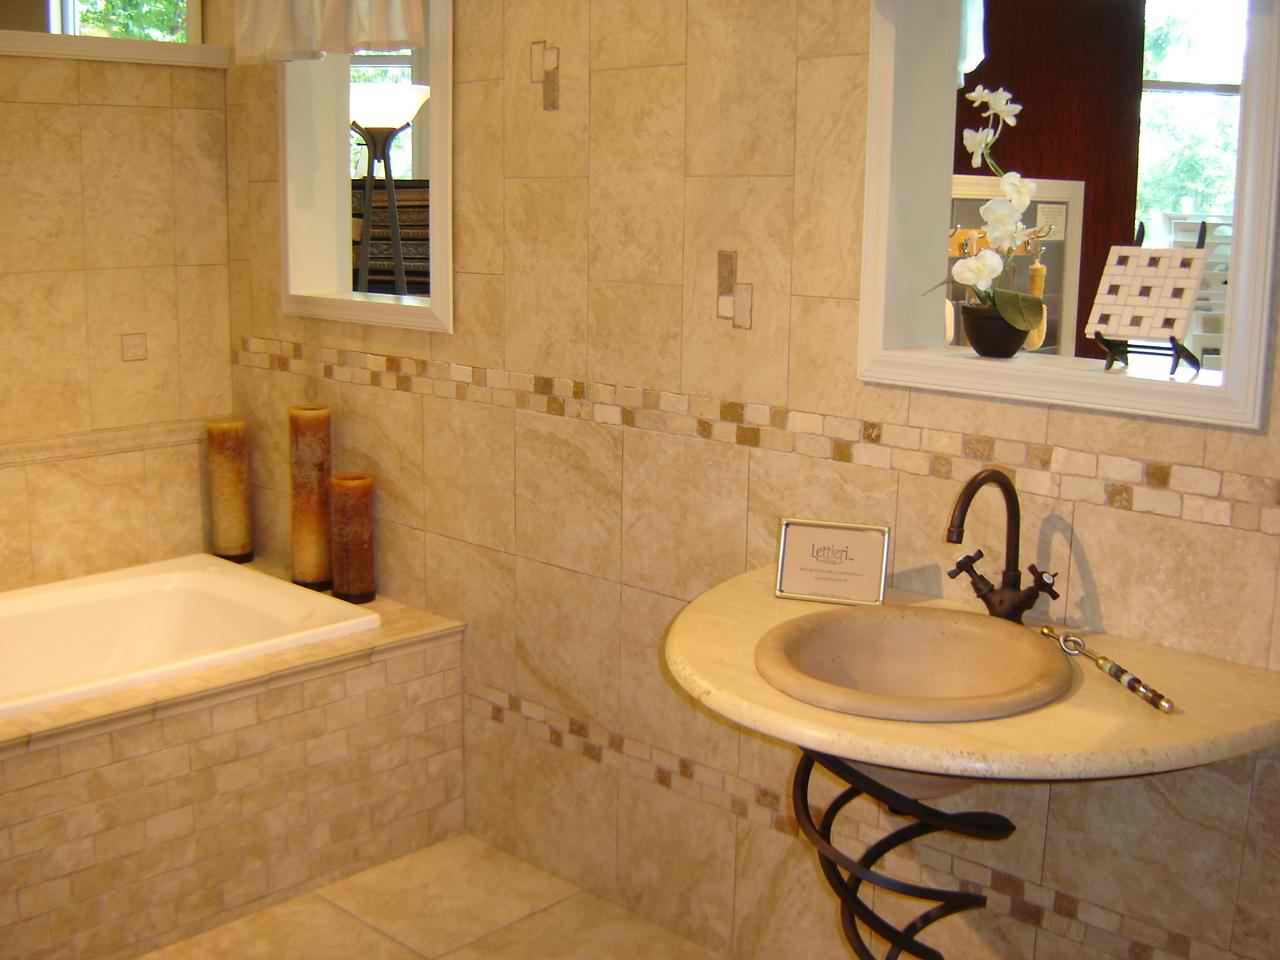 27 28 - Tile Design Ideas For Bathrooms